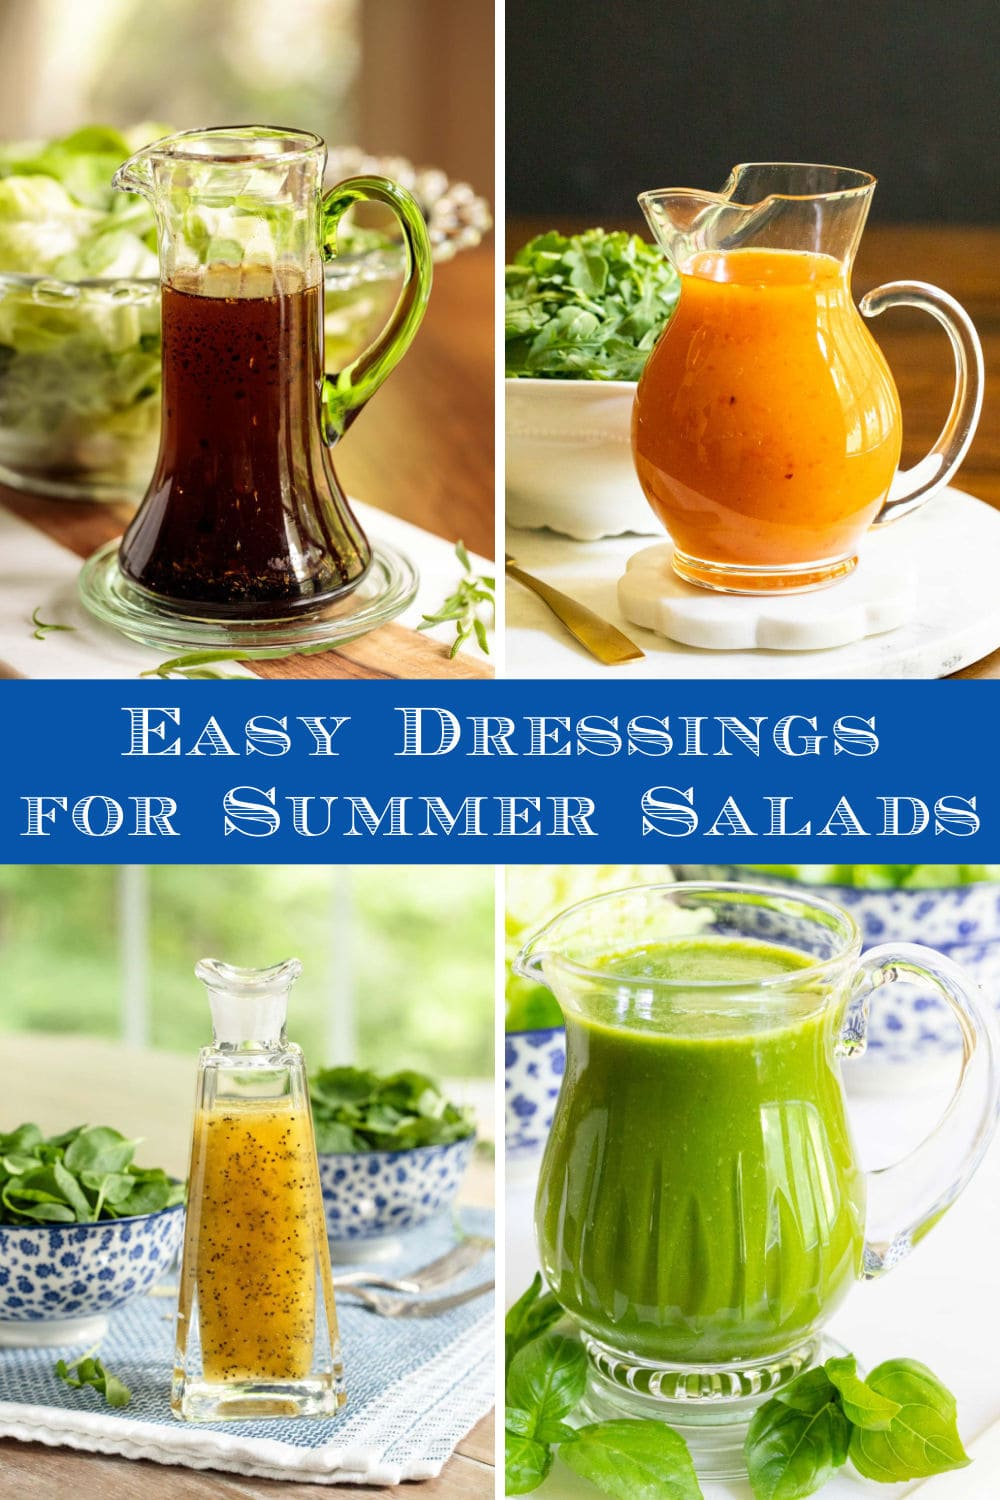 Pizzazz up your Summer Salads with these Easy Dressings!